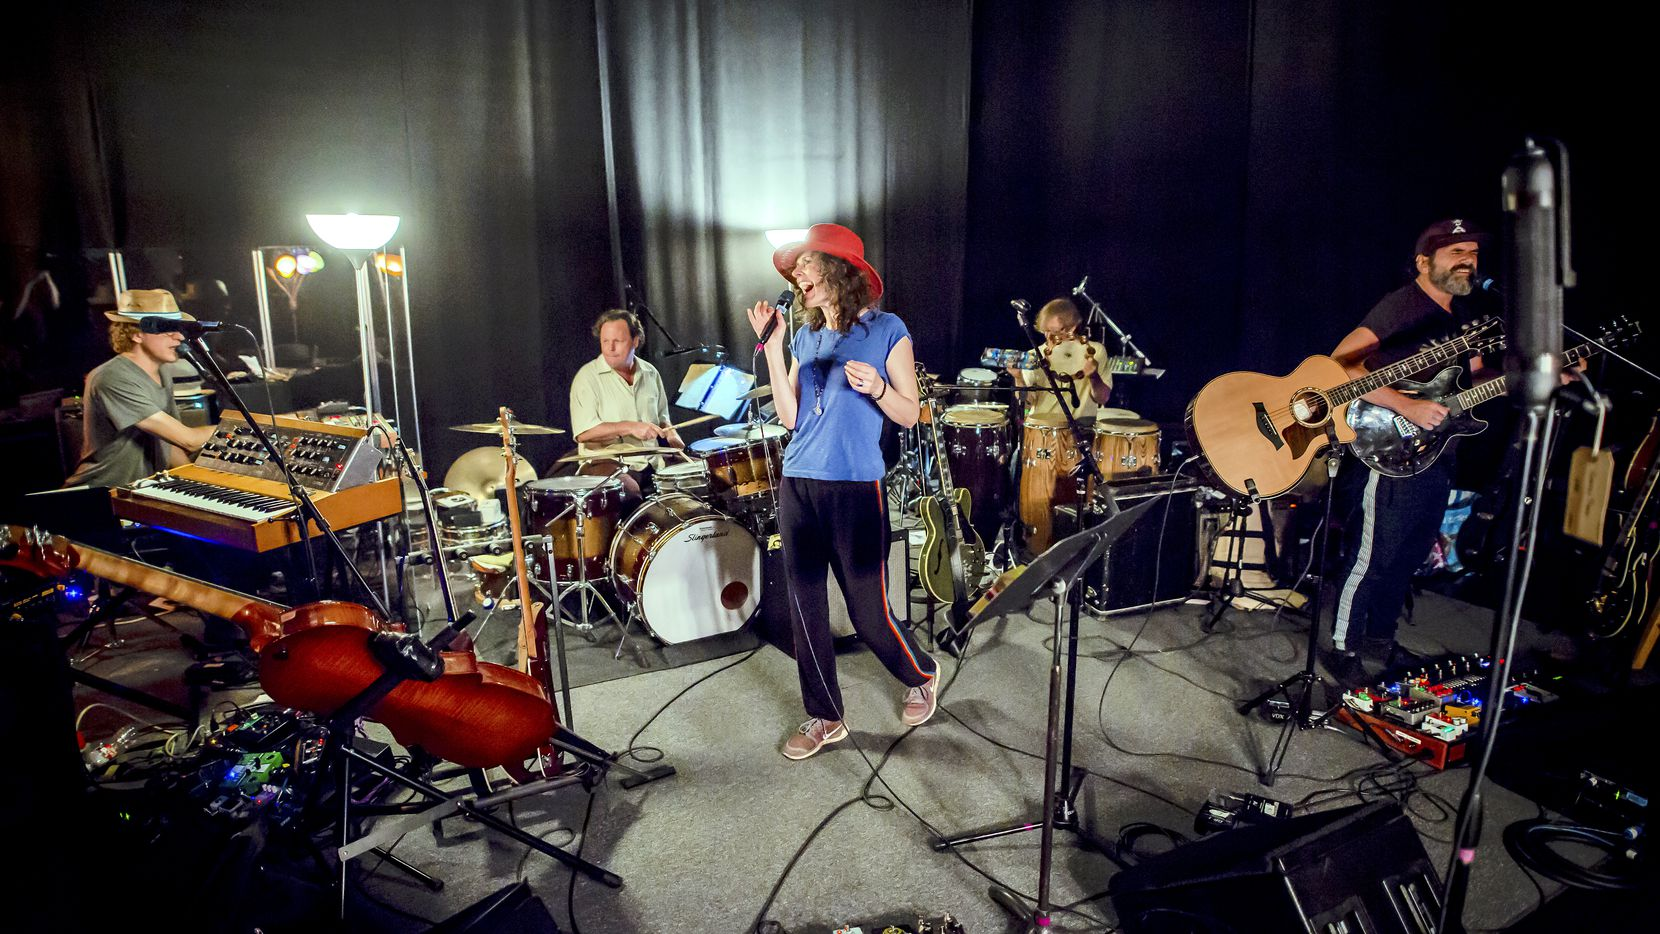 """Edie Brickell and New Bohemians rehearse for an upcoming tour in support of their first new album in 12 years, """"Rocket."""" //permission secured from publicist Julia Casey, Julia.Casey@umusic.com, on 10/01/18//"""